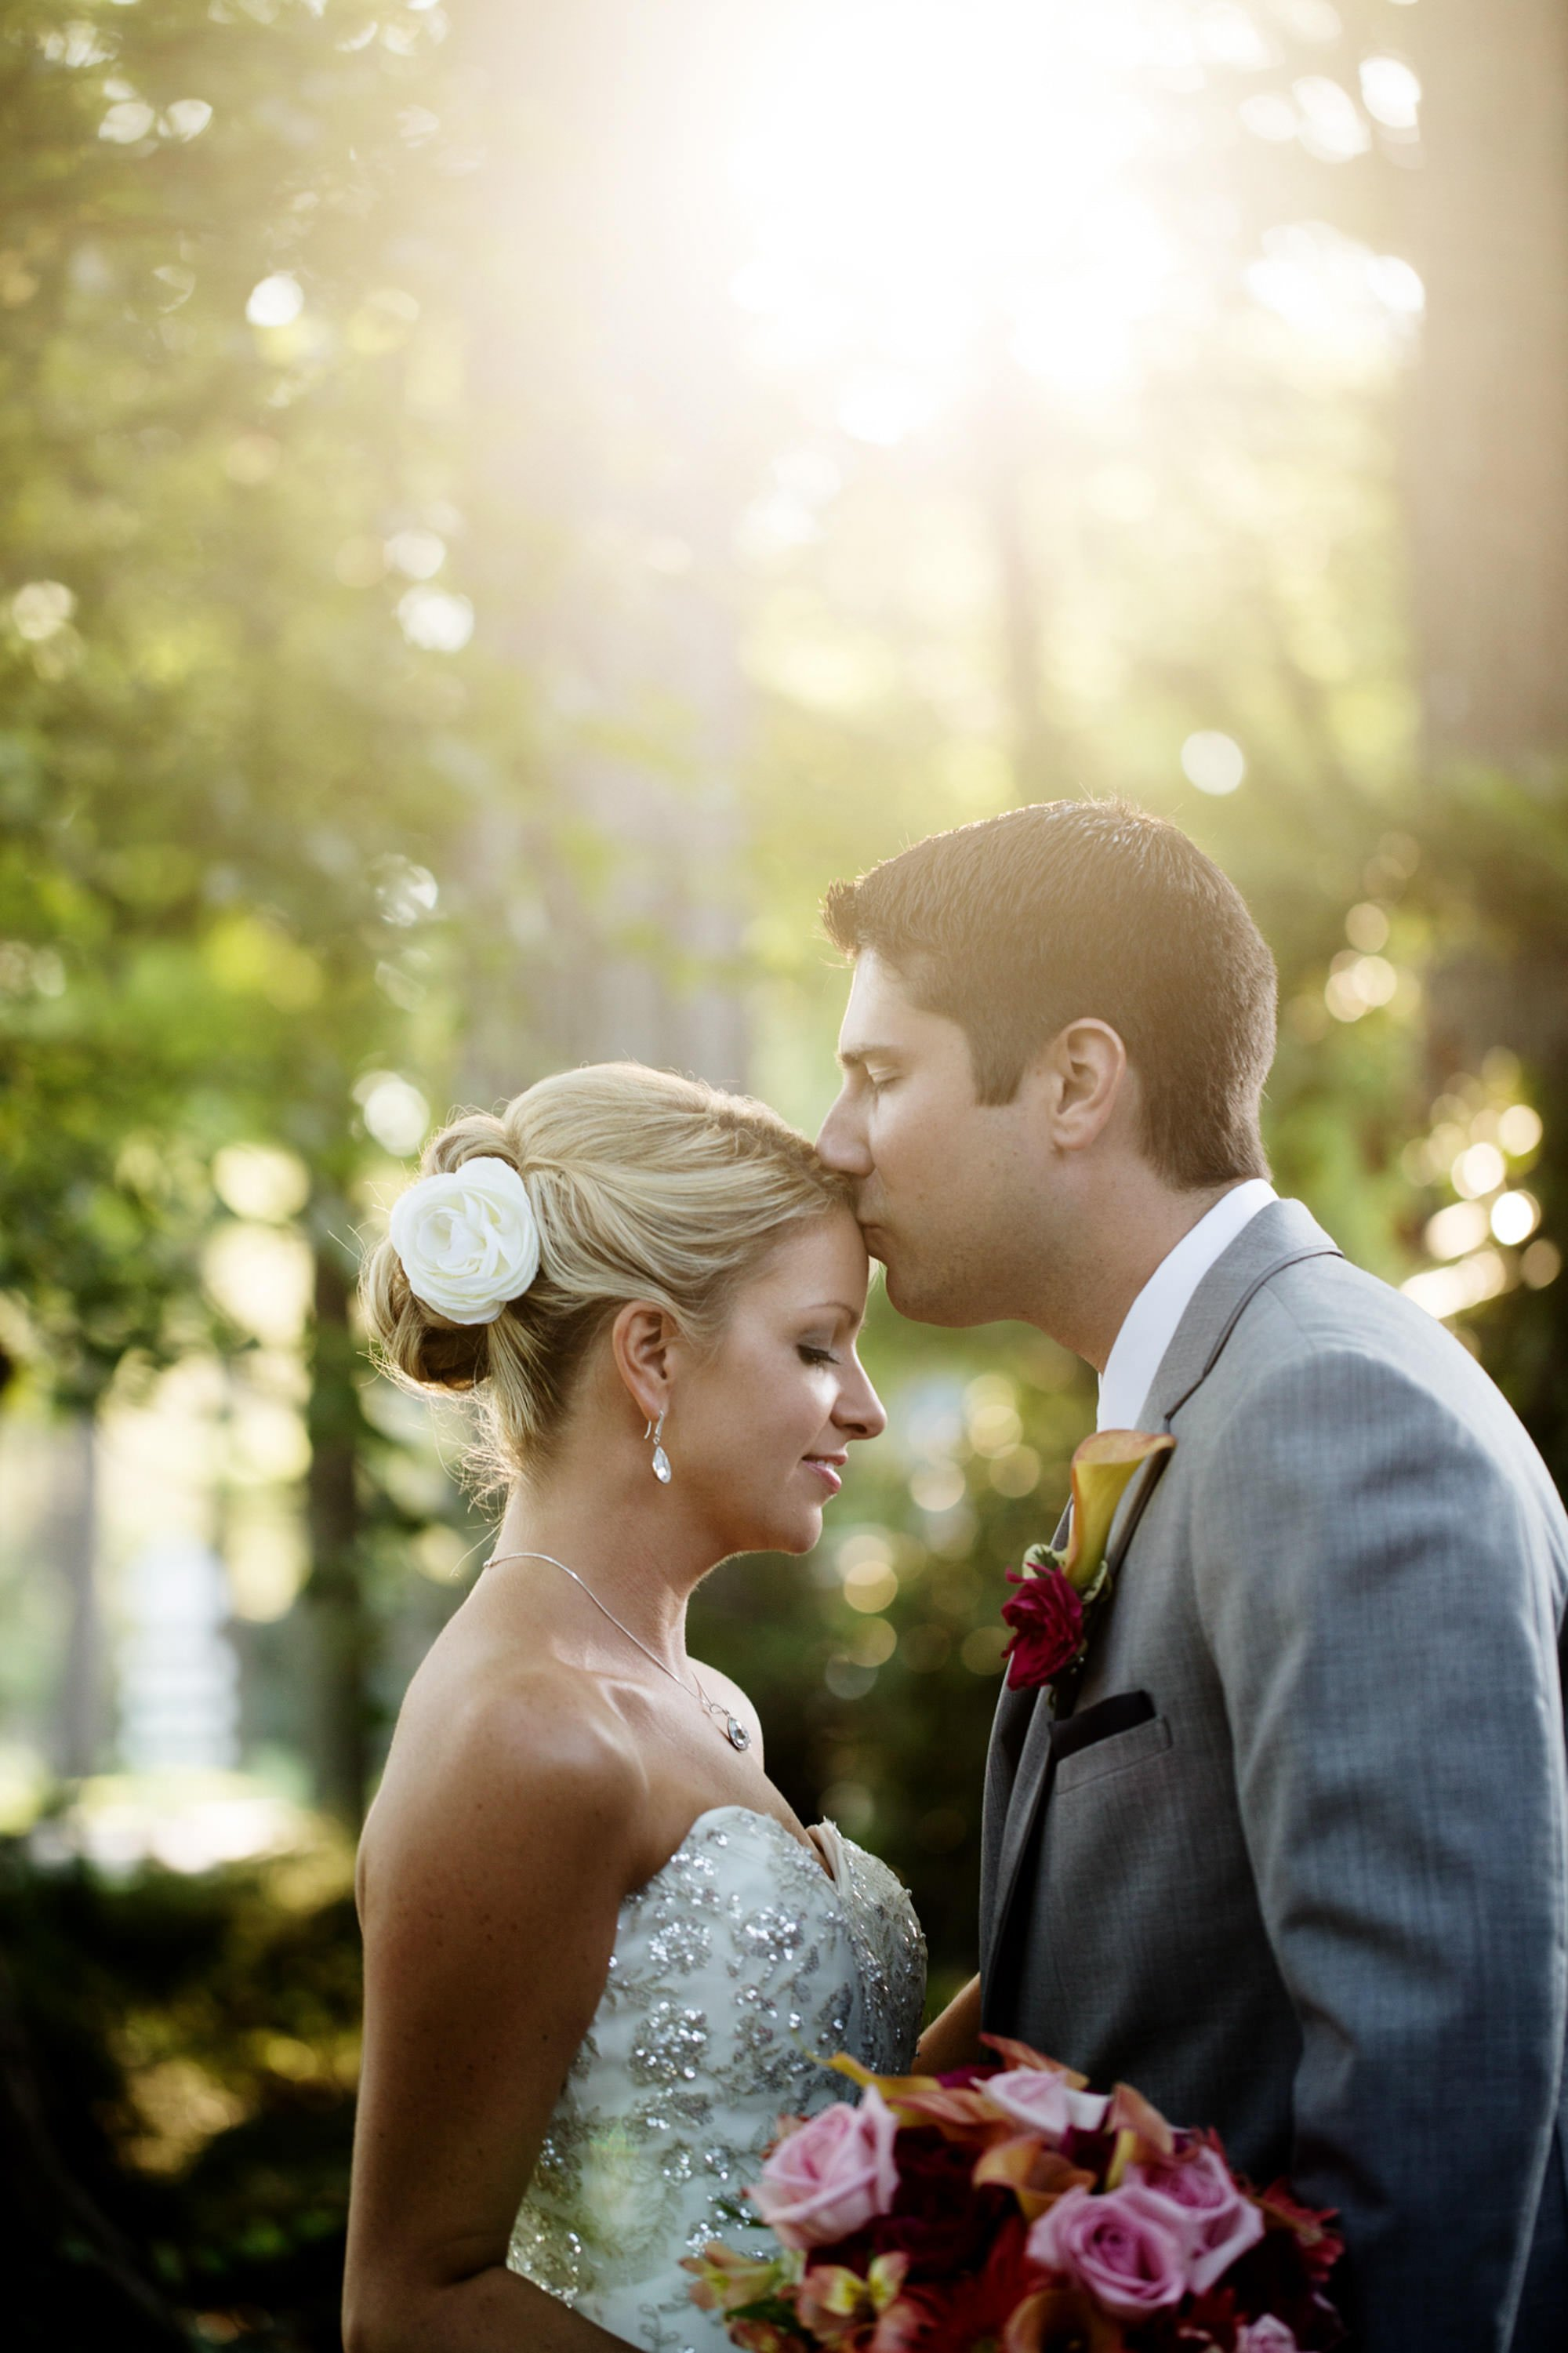 The bride and groom pose during sunset on their wedding day at Nittany Lion Inn.